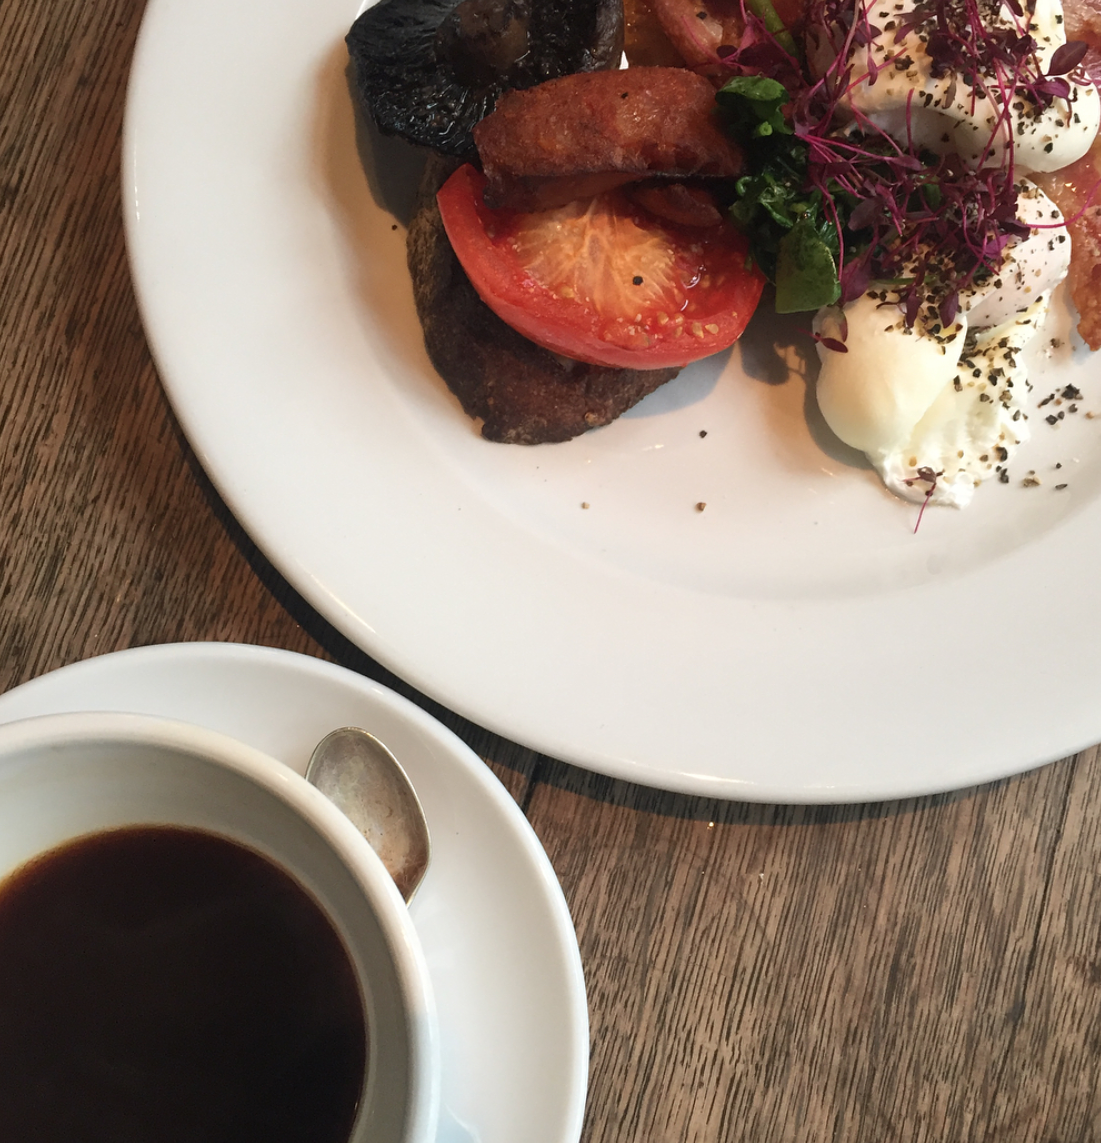 Cafe rust review - veggie breakfast, with tomato, mushrooms and poached eggs in picture. Black coffee pictured to bottom left of image